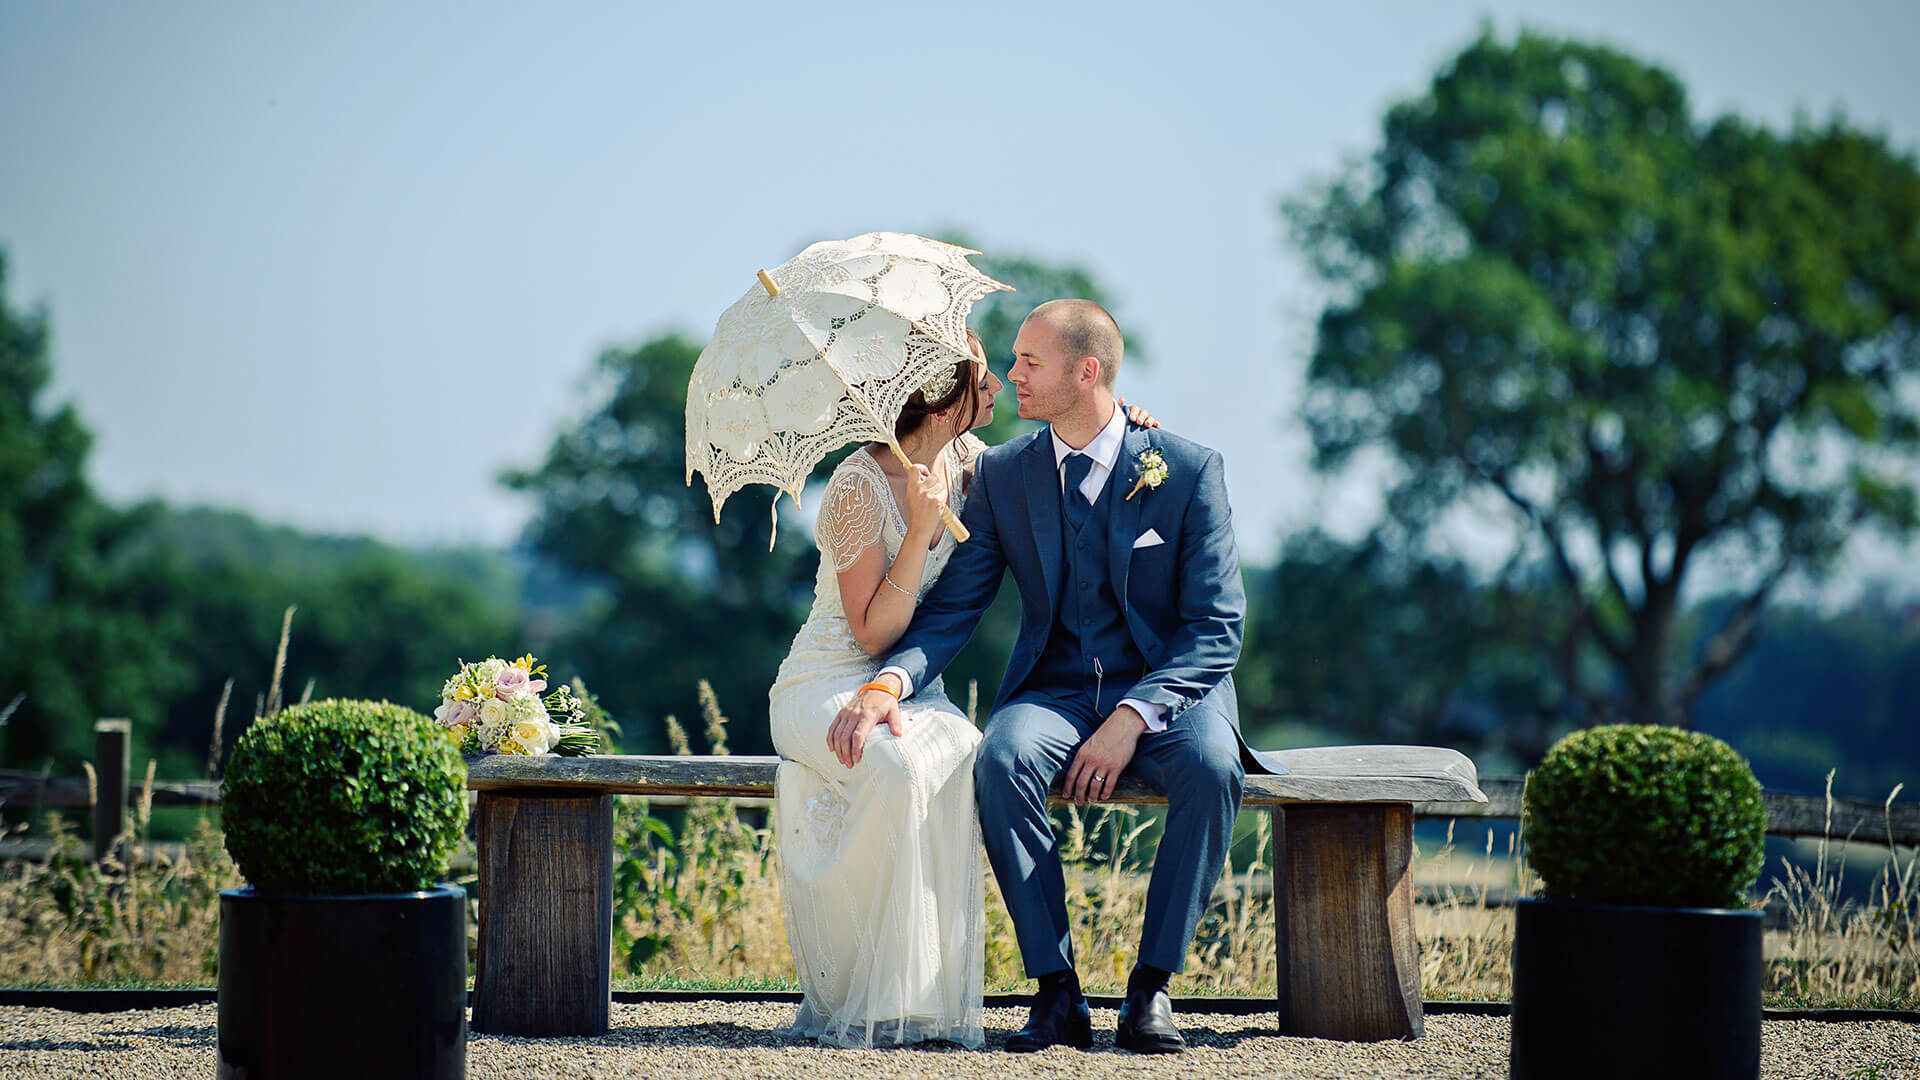 A bride holds a vintage wedding parasol as the perfect accessory for a summer wedding - wedding ideas